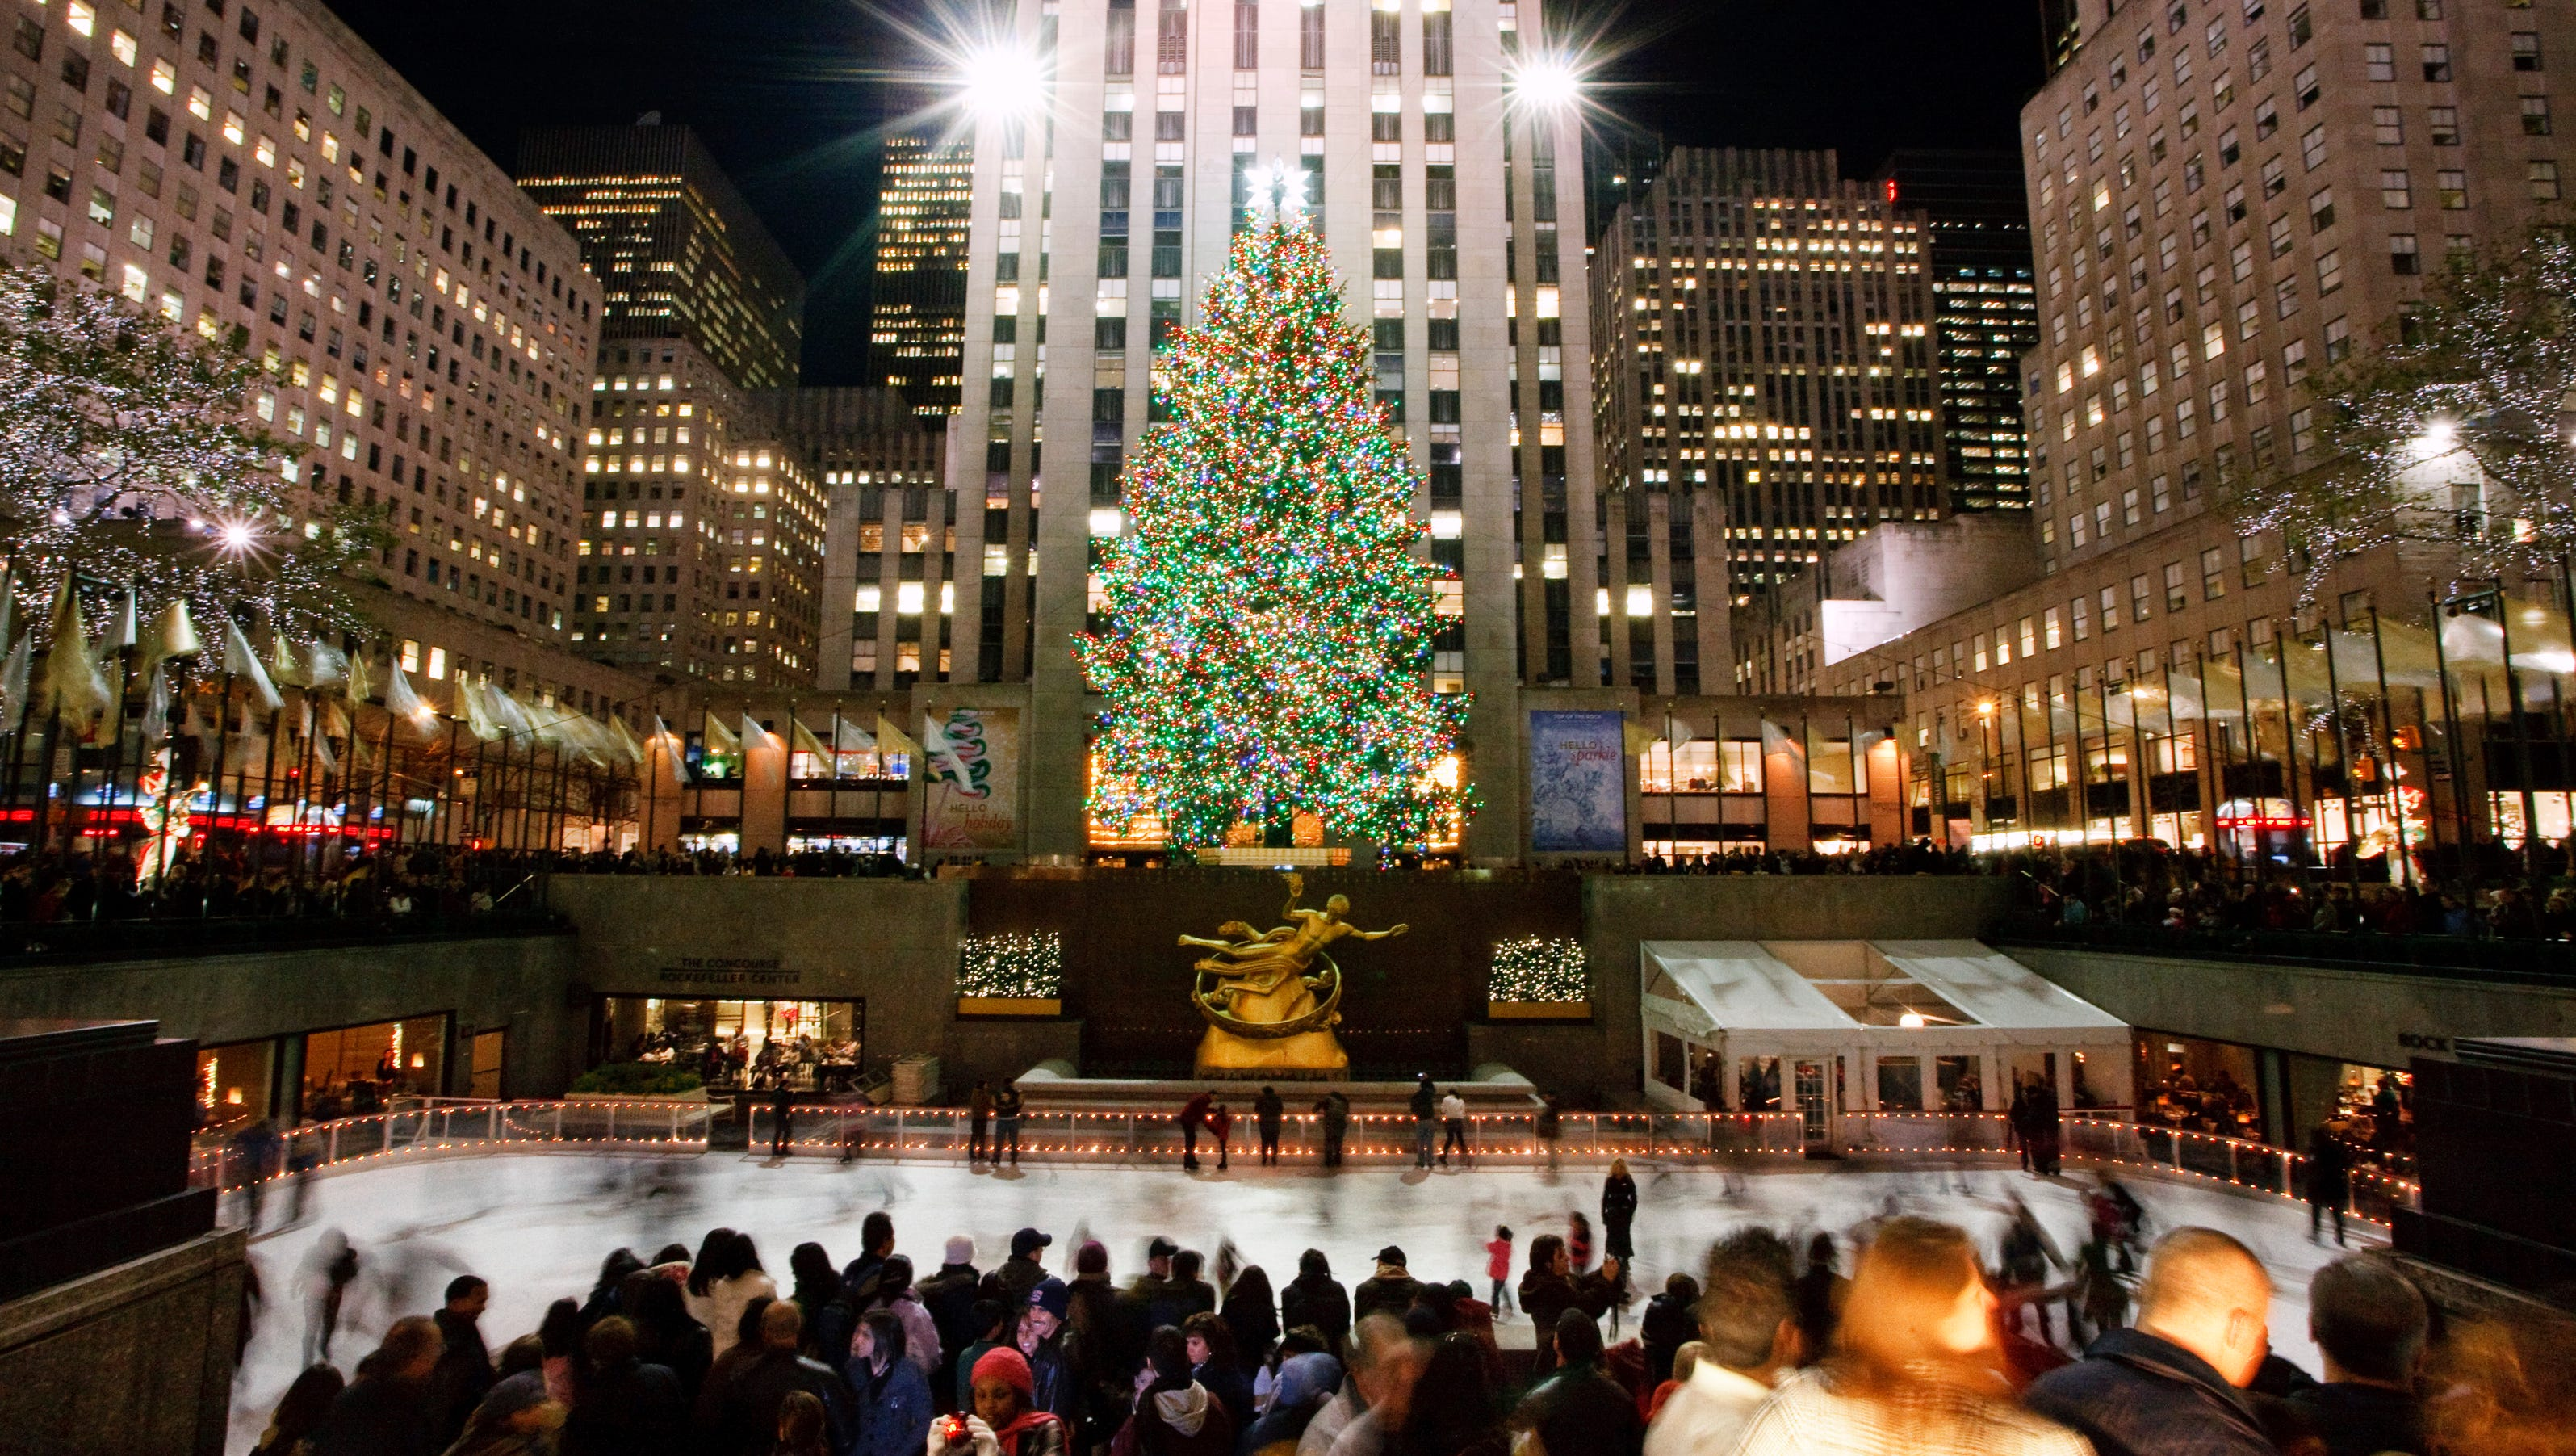 10Best: Places to see holiday lights in NYC